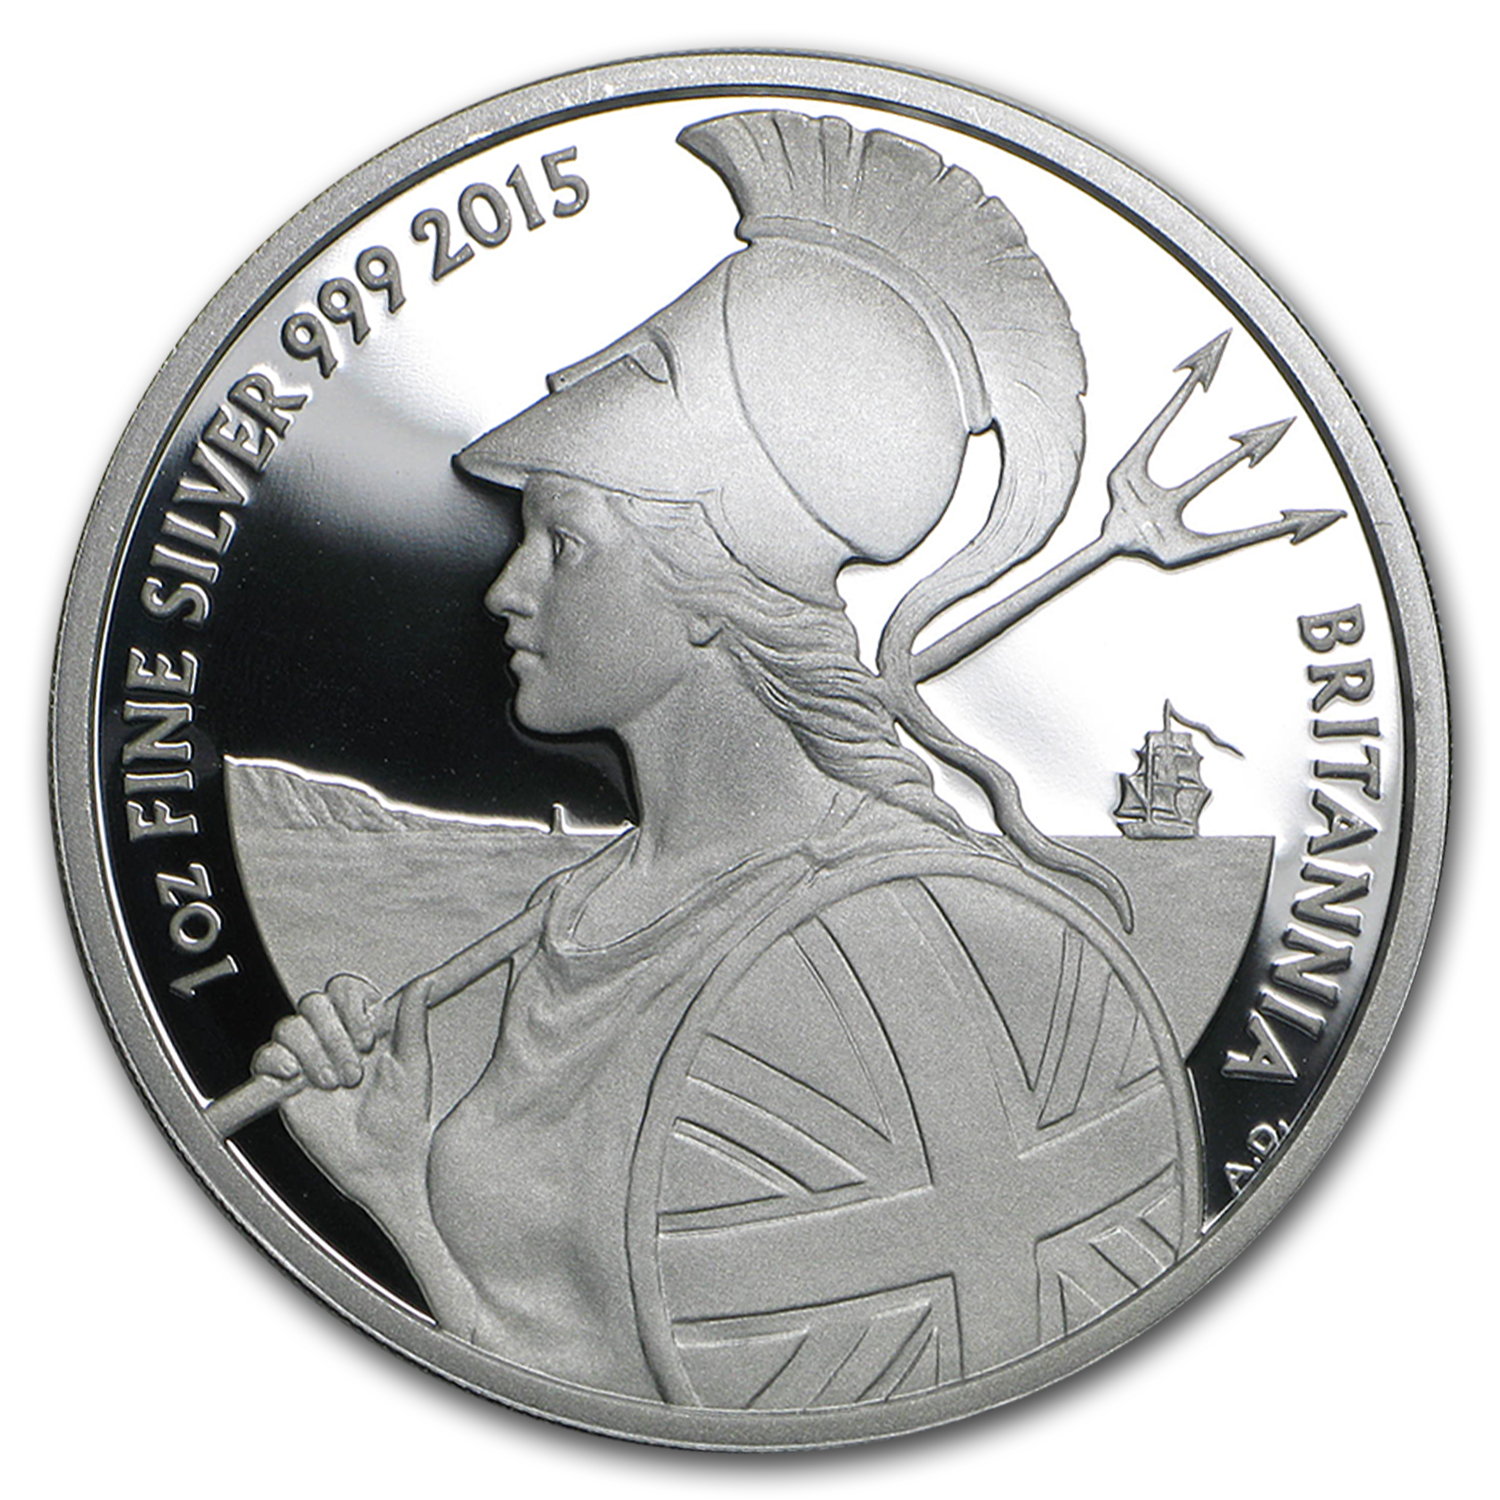 2015 Great Britain 1 oz Proof Silver Britannia